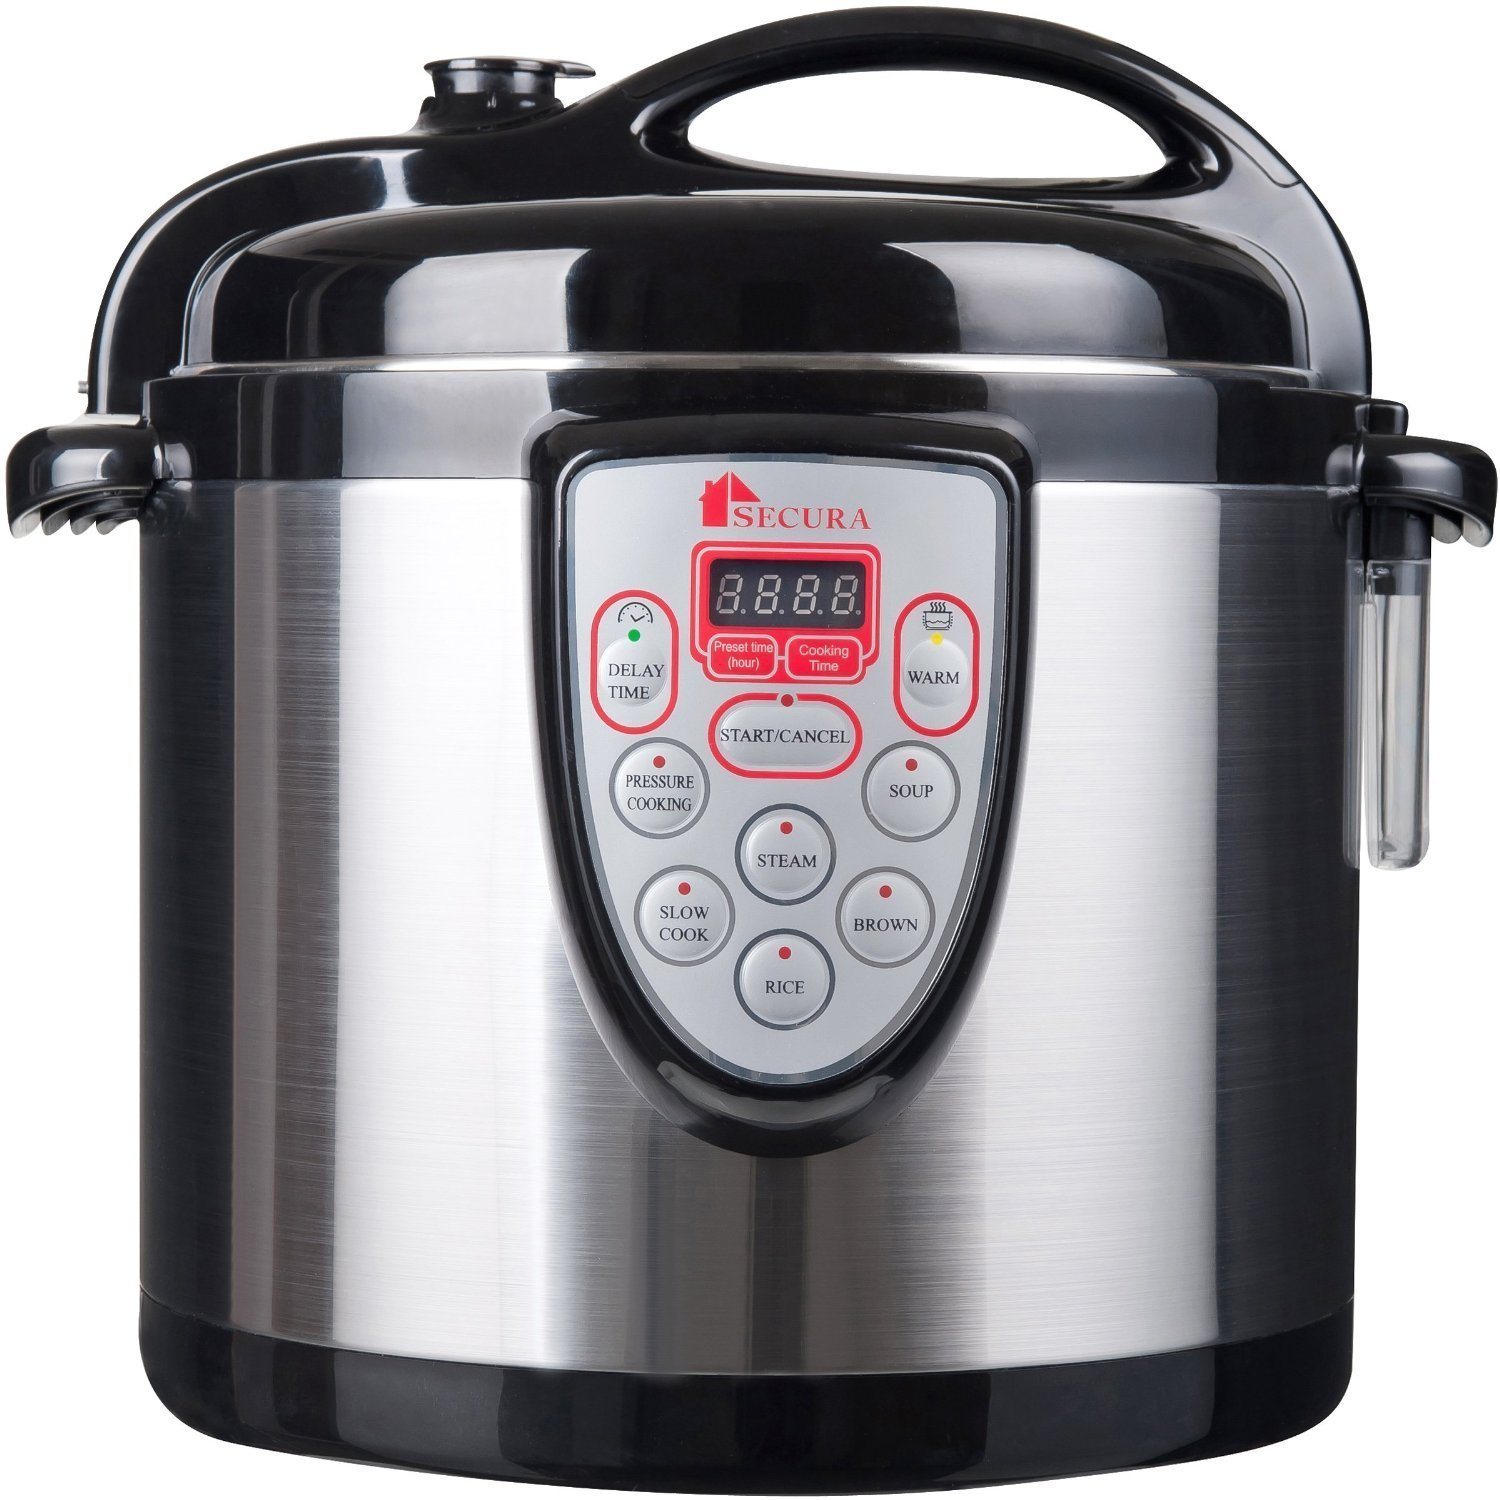 Secura 6-in-1 Electric Pressure Cooker